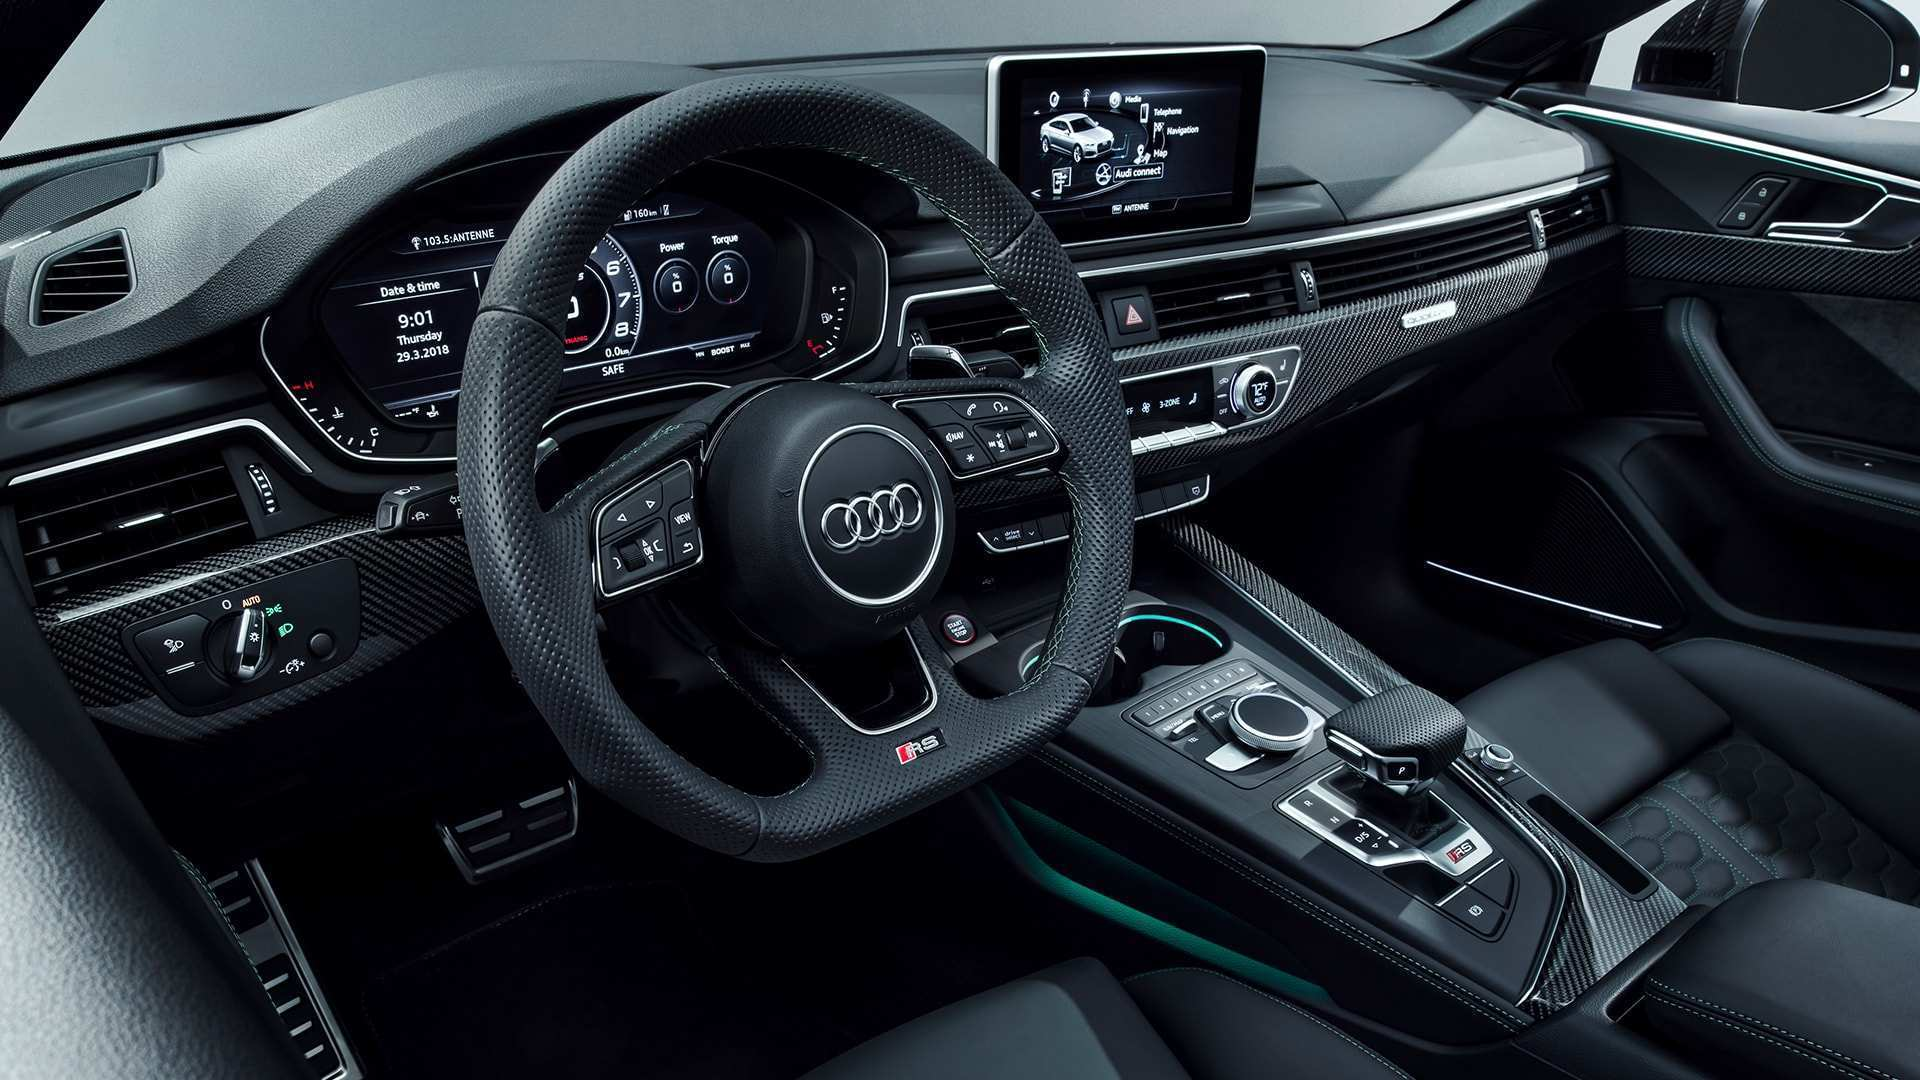 91 The Best 2019 Audi Rs5 Configurations